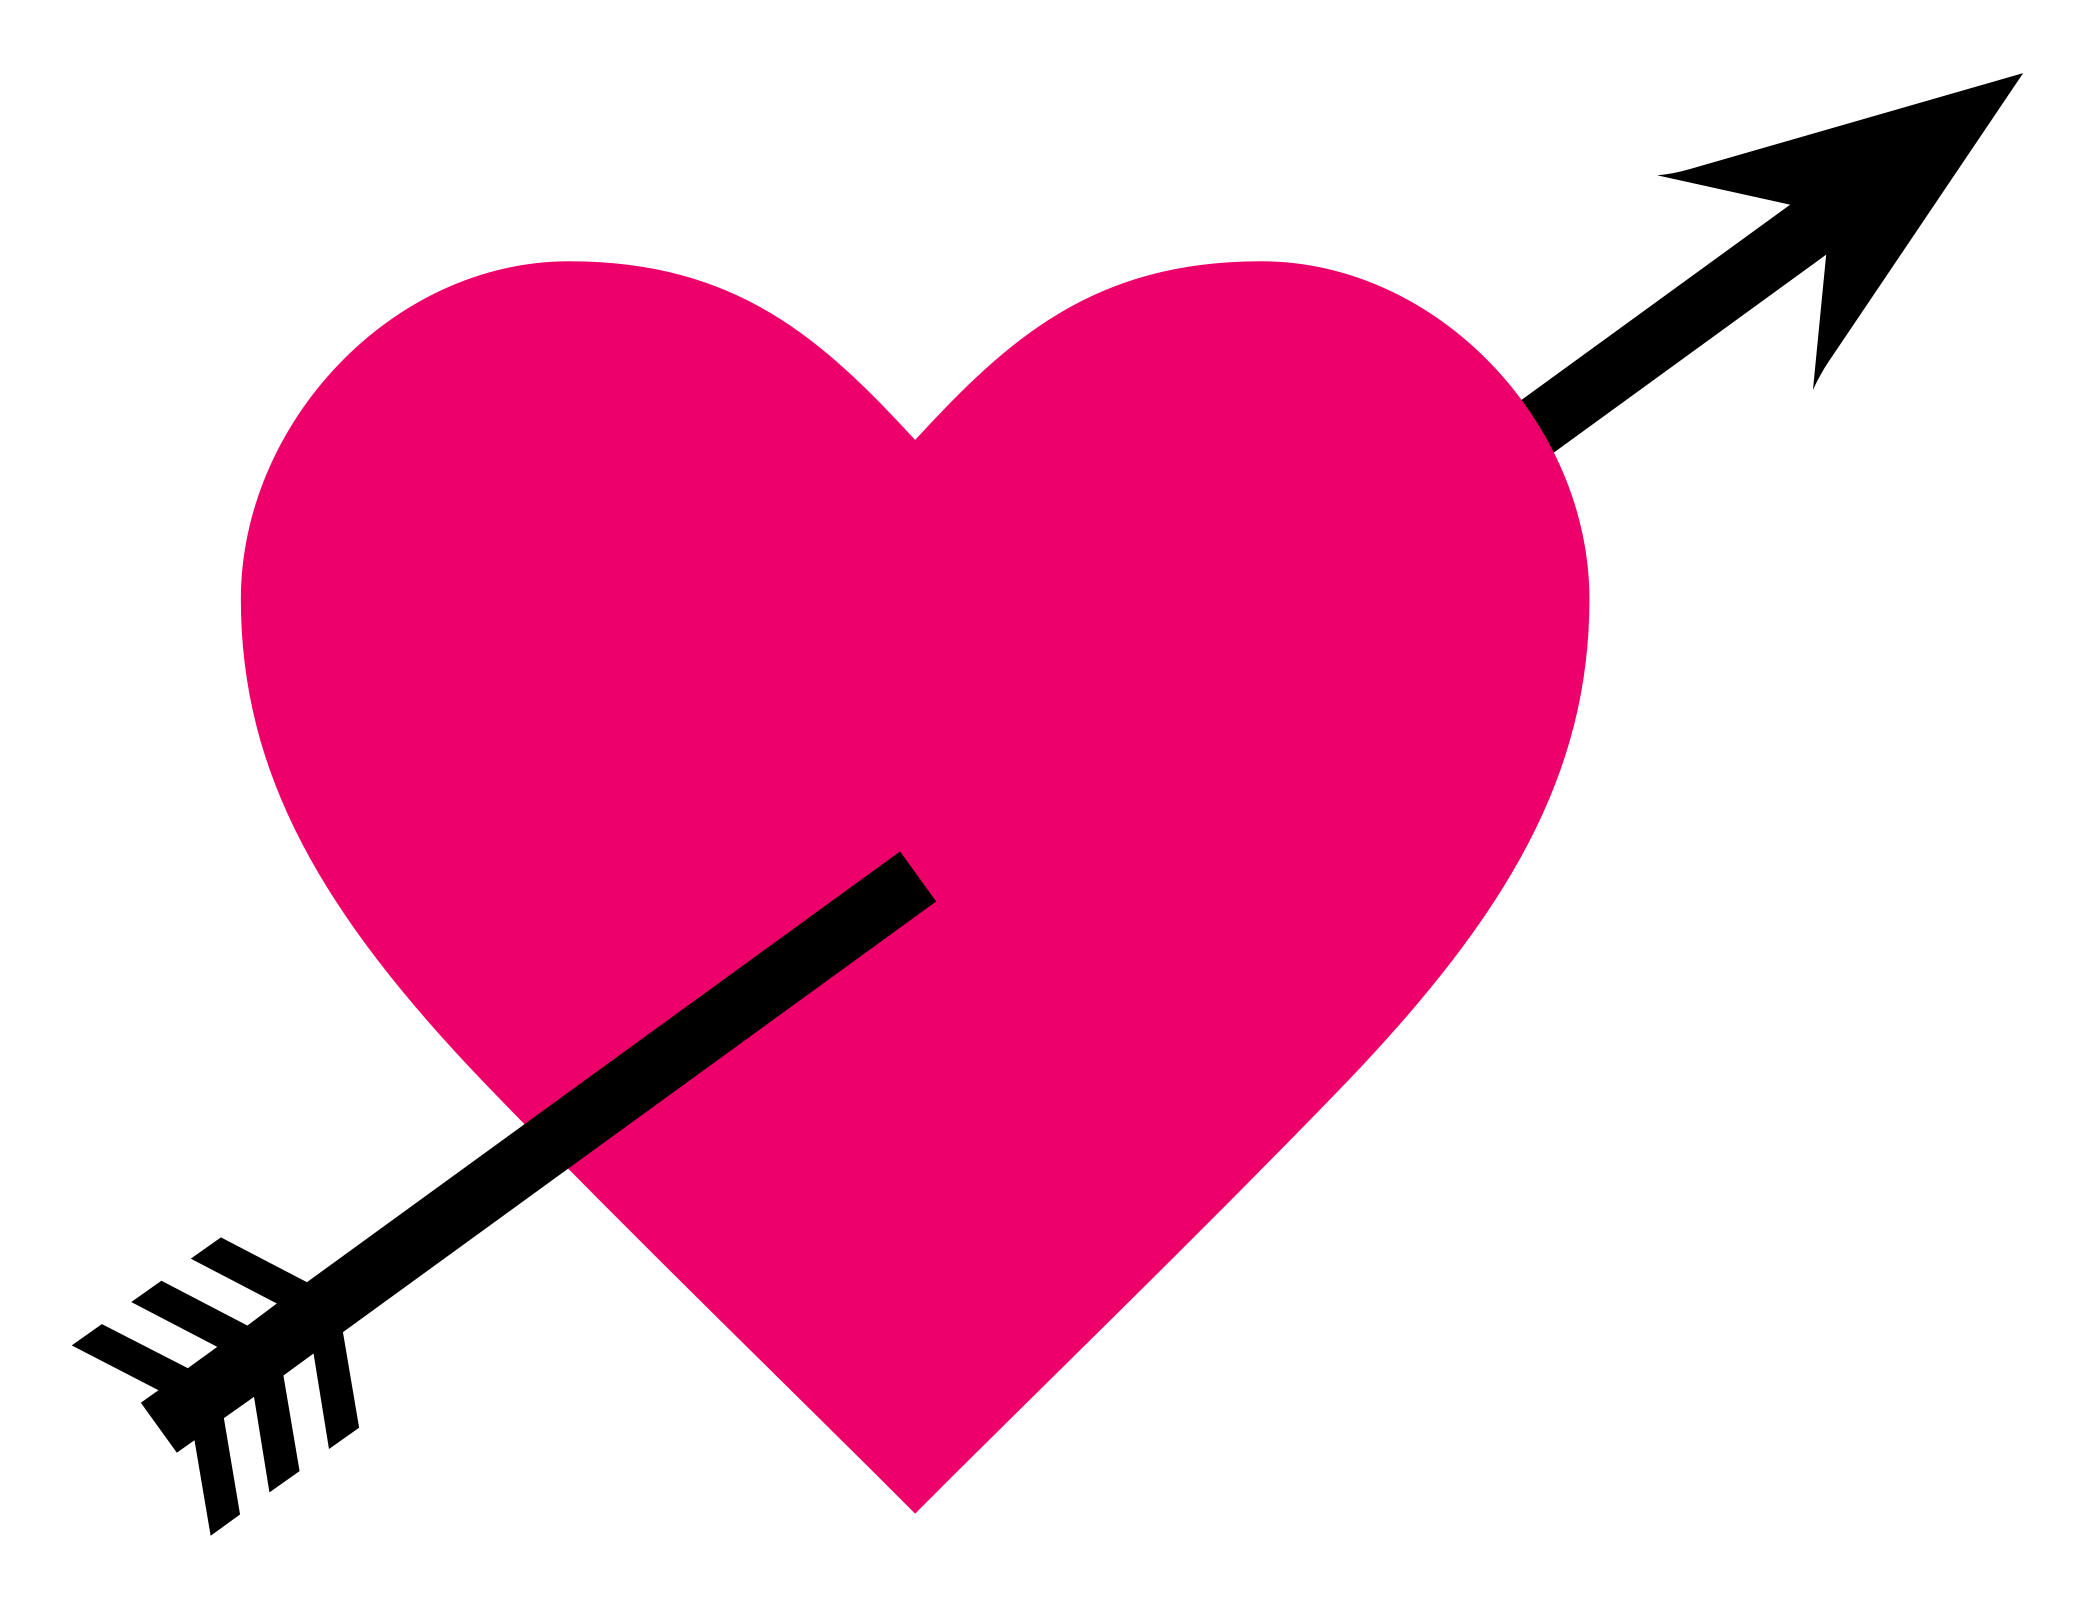 Heart PNG Transparent Image - Heart PNG